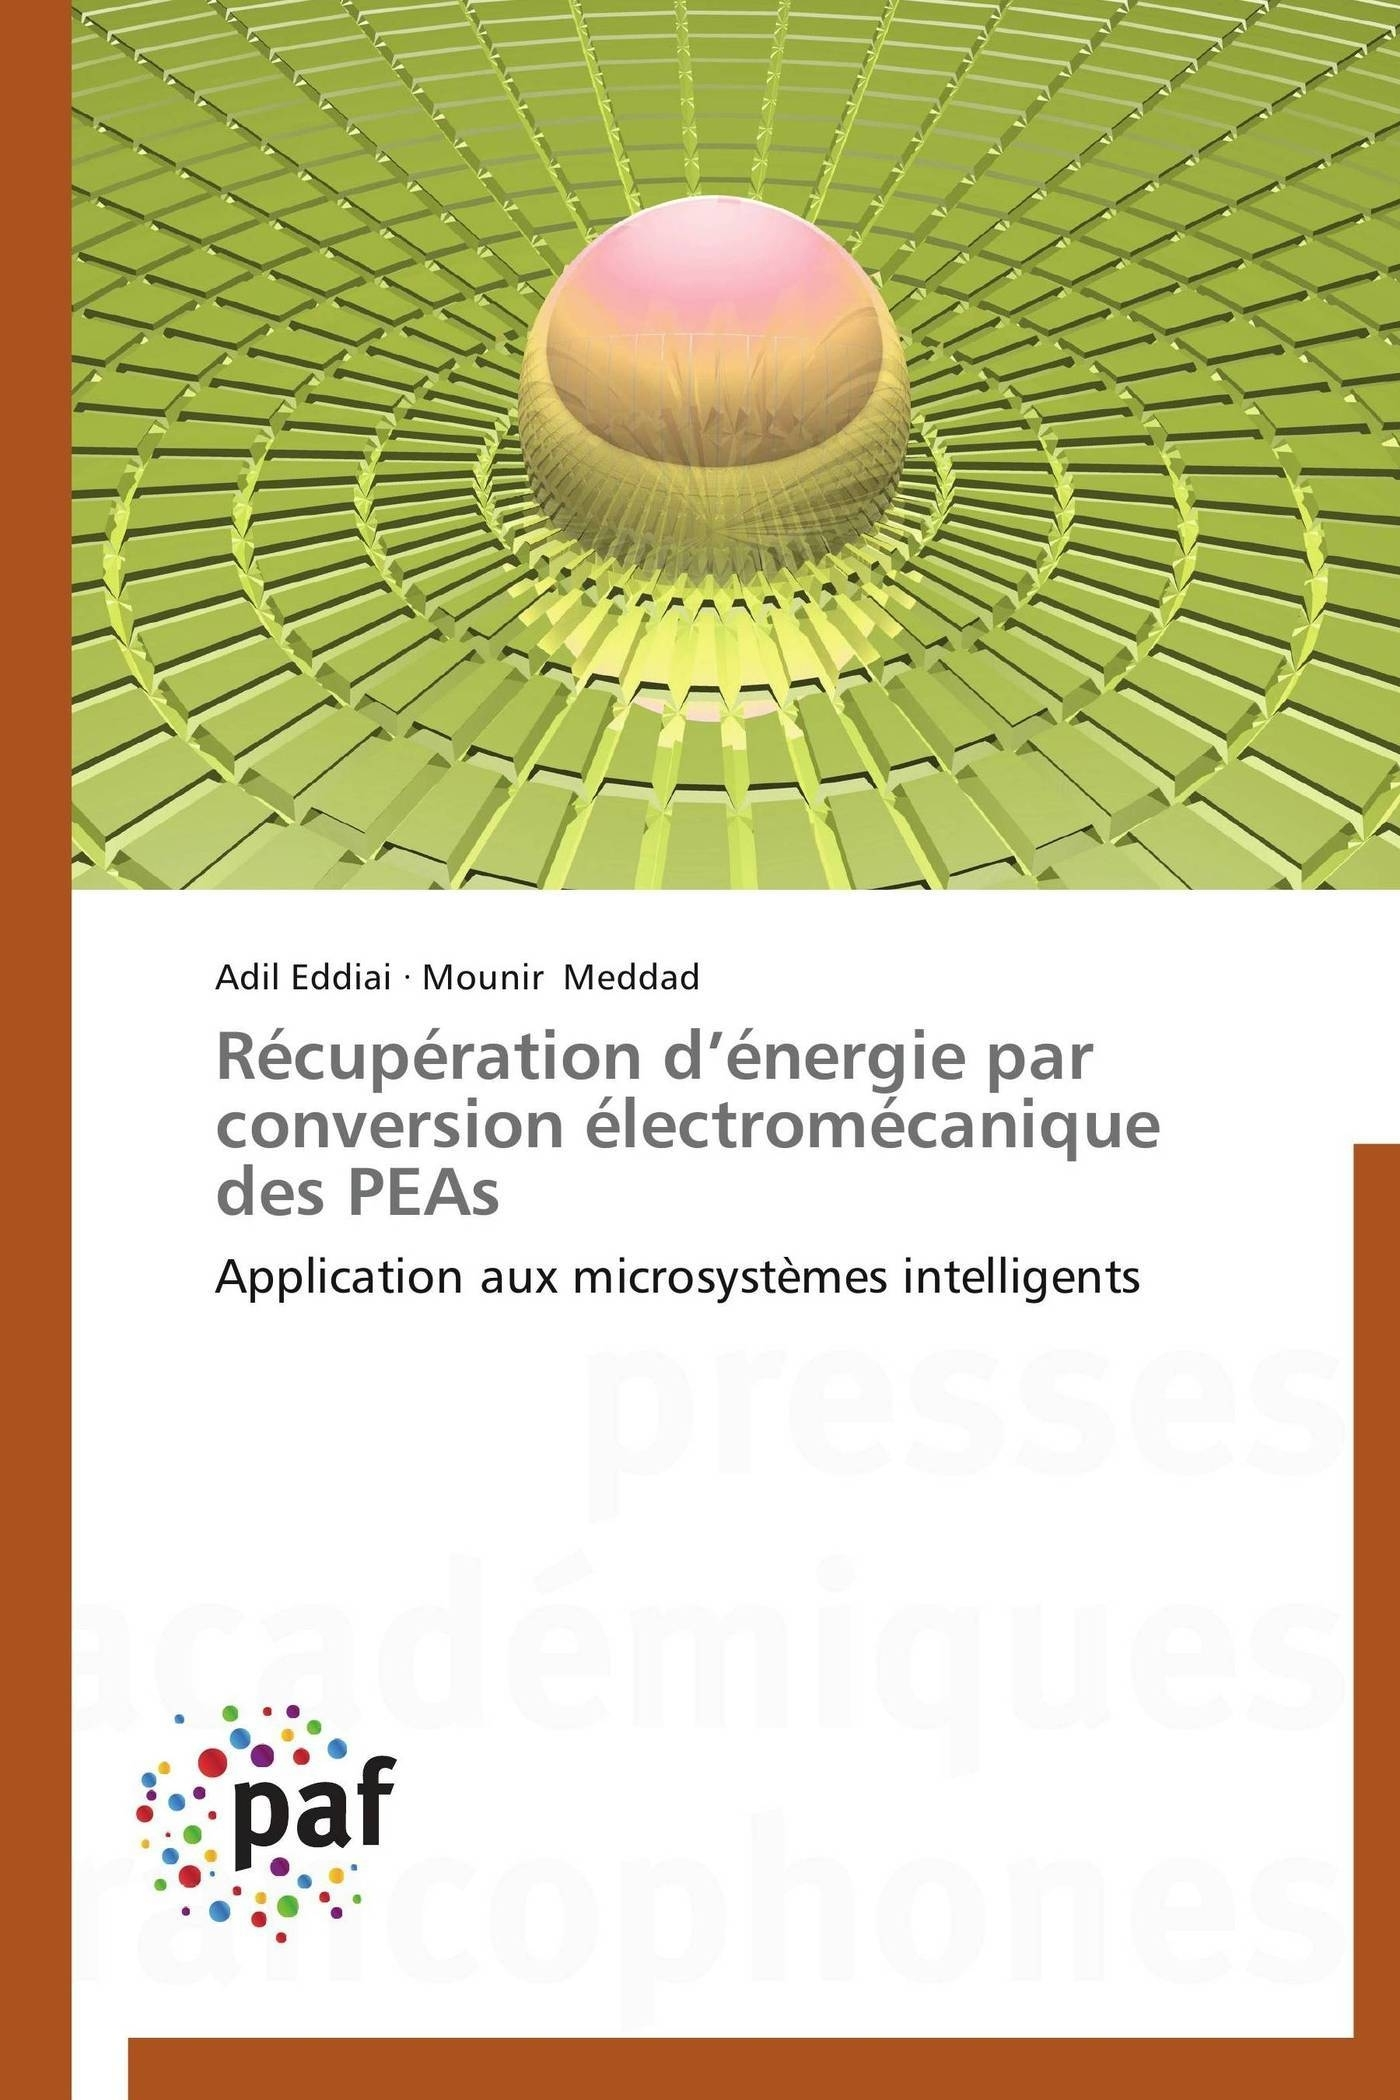 RECUPERATION D ENERGIE PAR CONVERSION ELECTROMECANIQUE DES PEAS